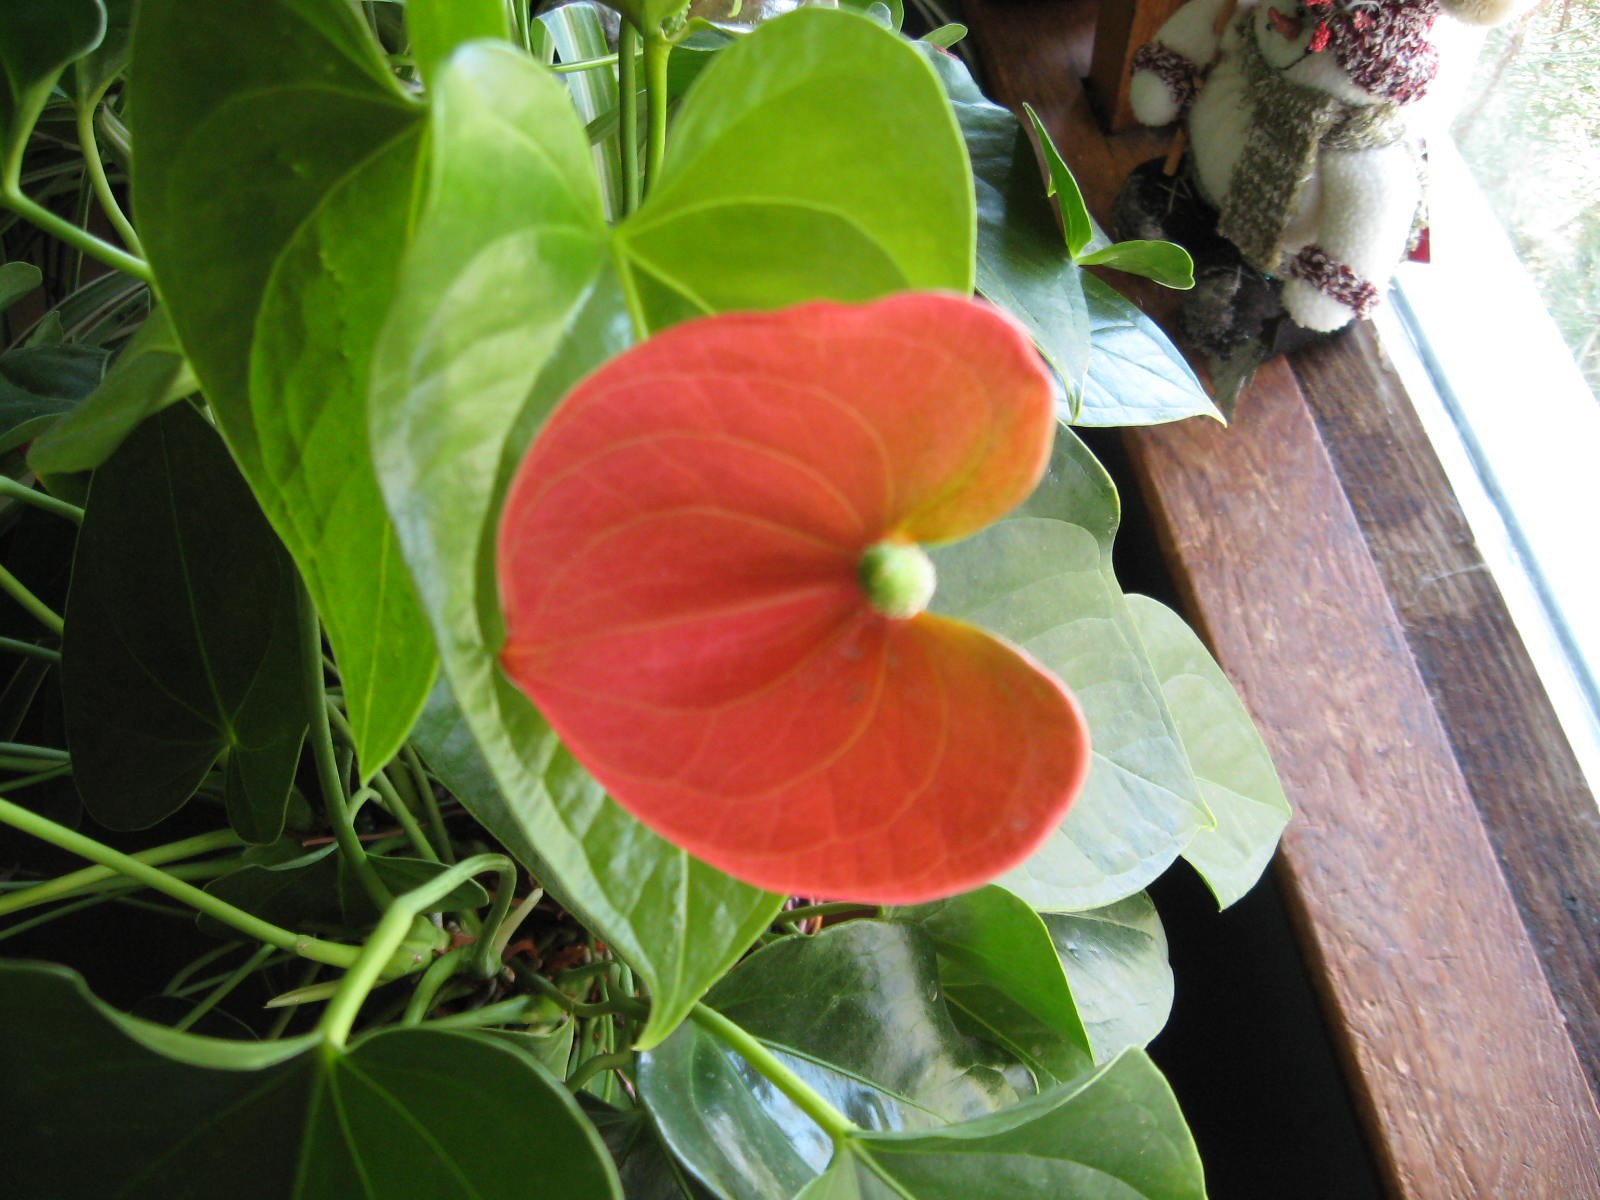 Proper care for an anthurium flamingo flower anthurium plant flamingo lily bloom anthurium andraeanum izmirmasajfo